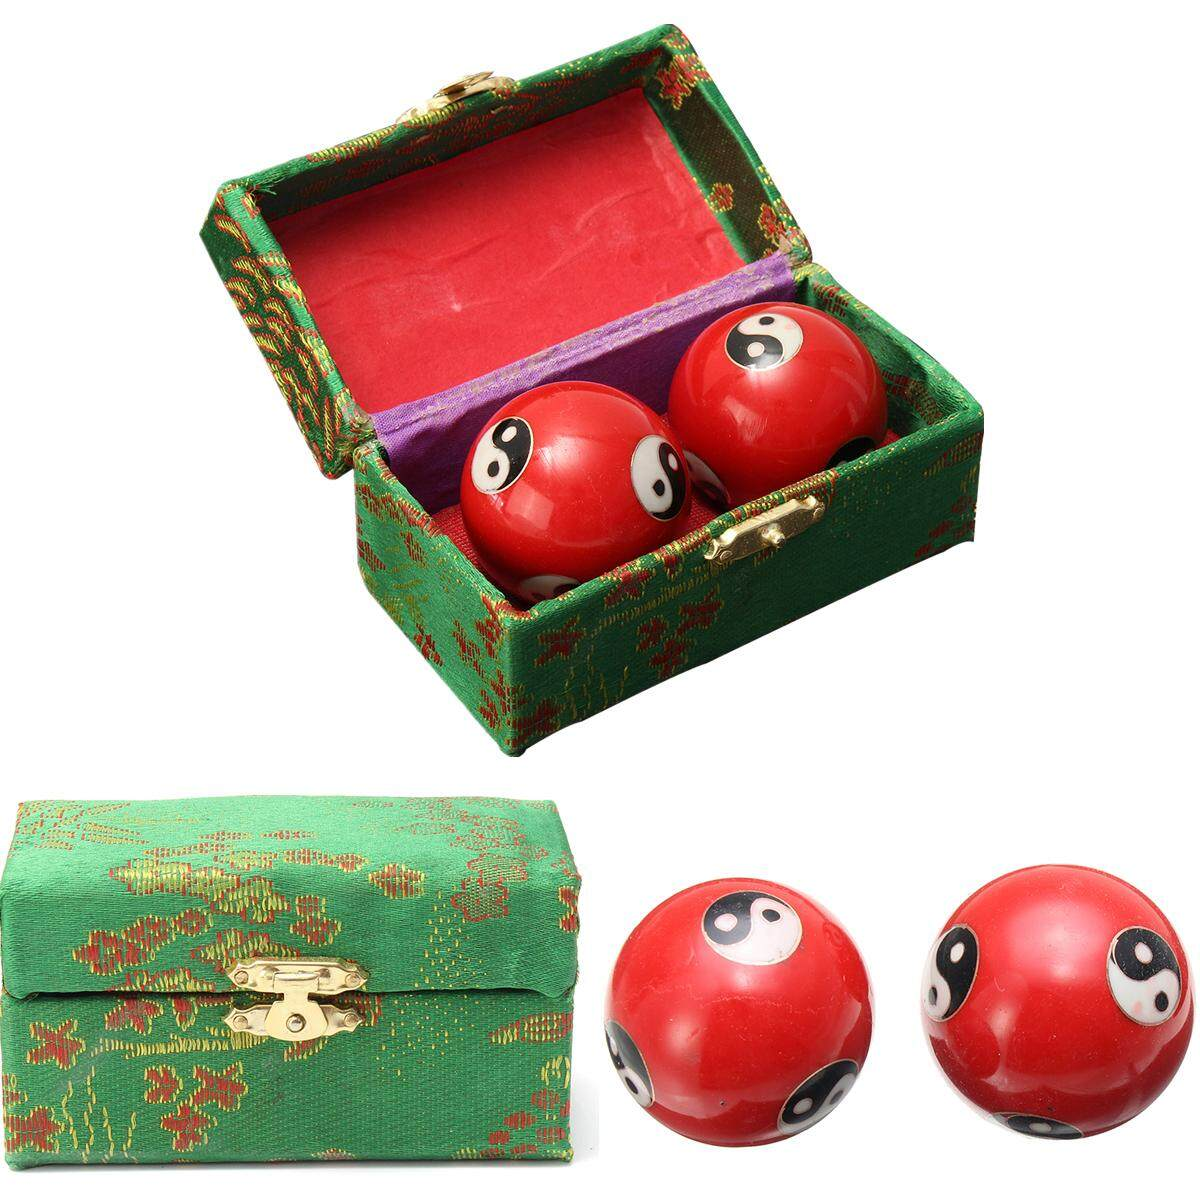 Chinese Health Exercise Stress Relief Baoding Balls Yin Yang Red 42mm + Case By Elec Mall.